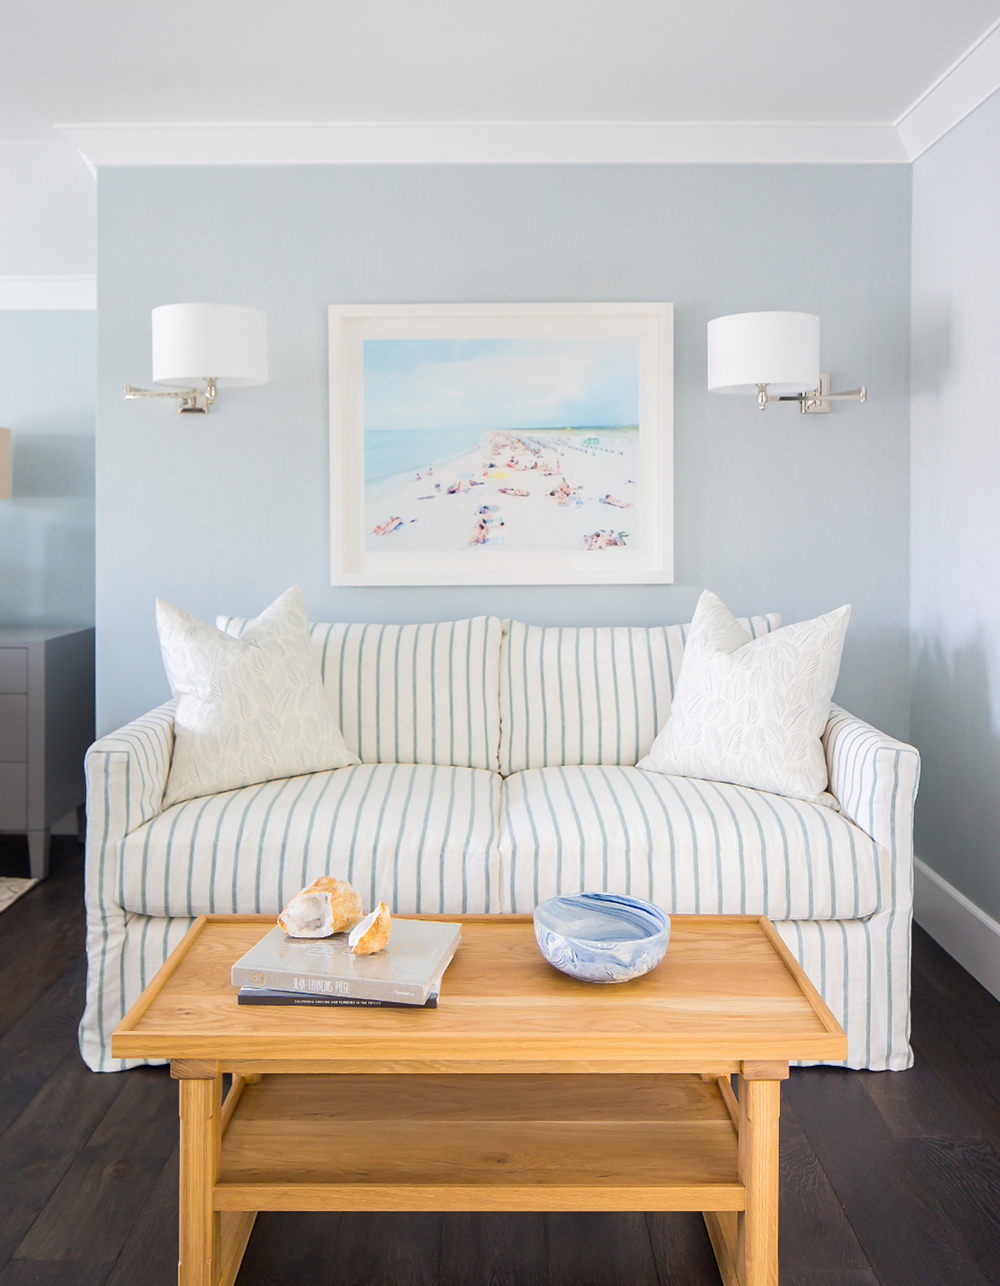 Noteworthy - Dreaming of a Beach Home - roomfortuesday.com